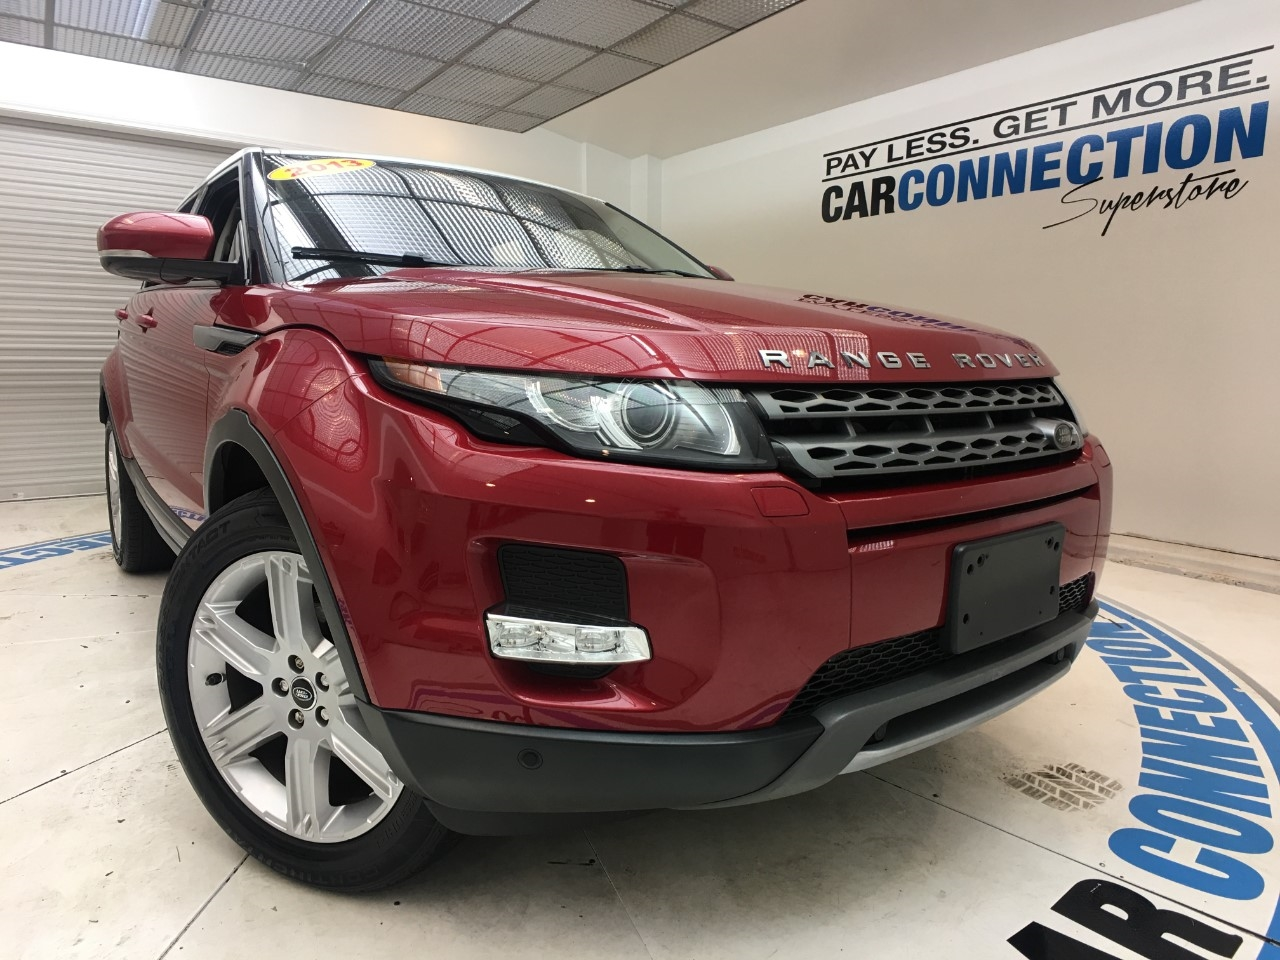 Pre-Owned 2013 Land Rover Range Rover Evoque 5DR HB PURE PLUS